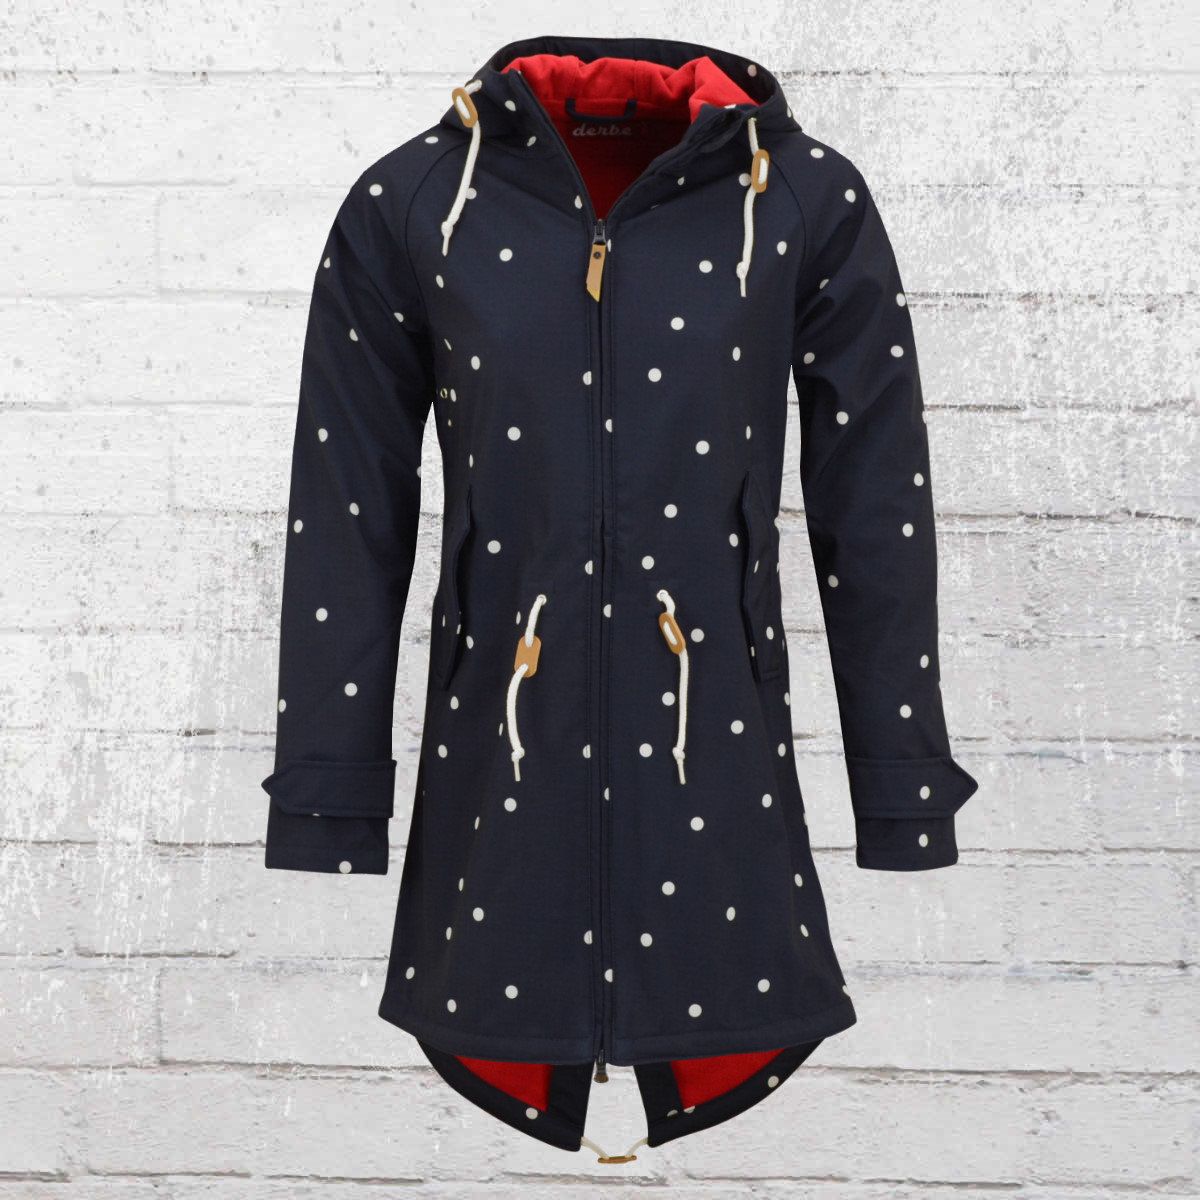 6dfdfa955e5589 Derbe Softshell Jacke Island Friese Dots blau weiss gepunktet. ›‹ «